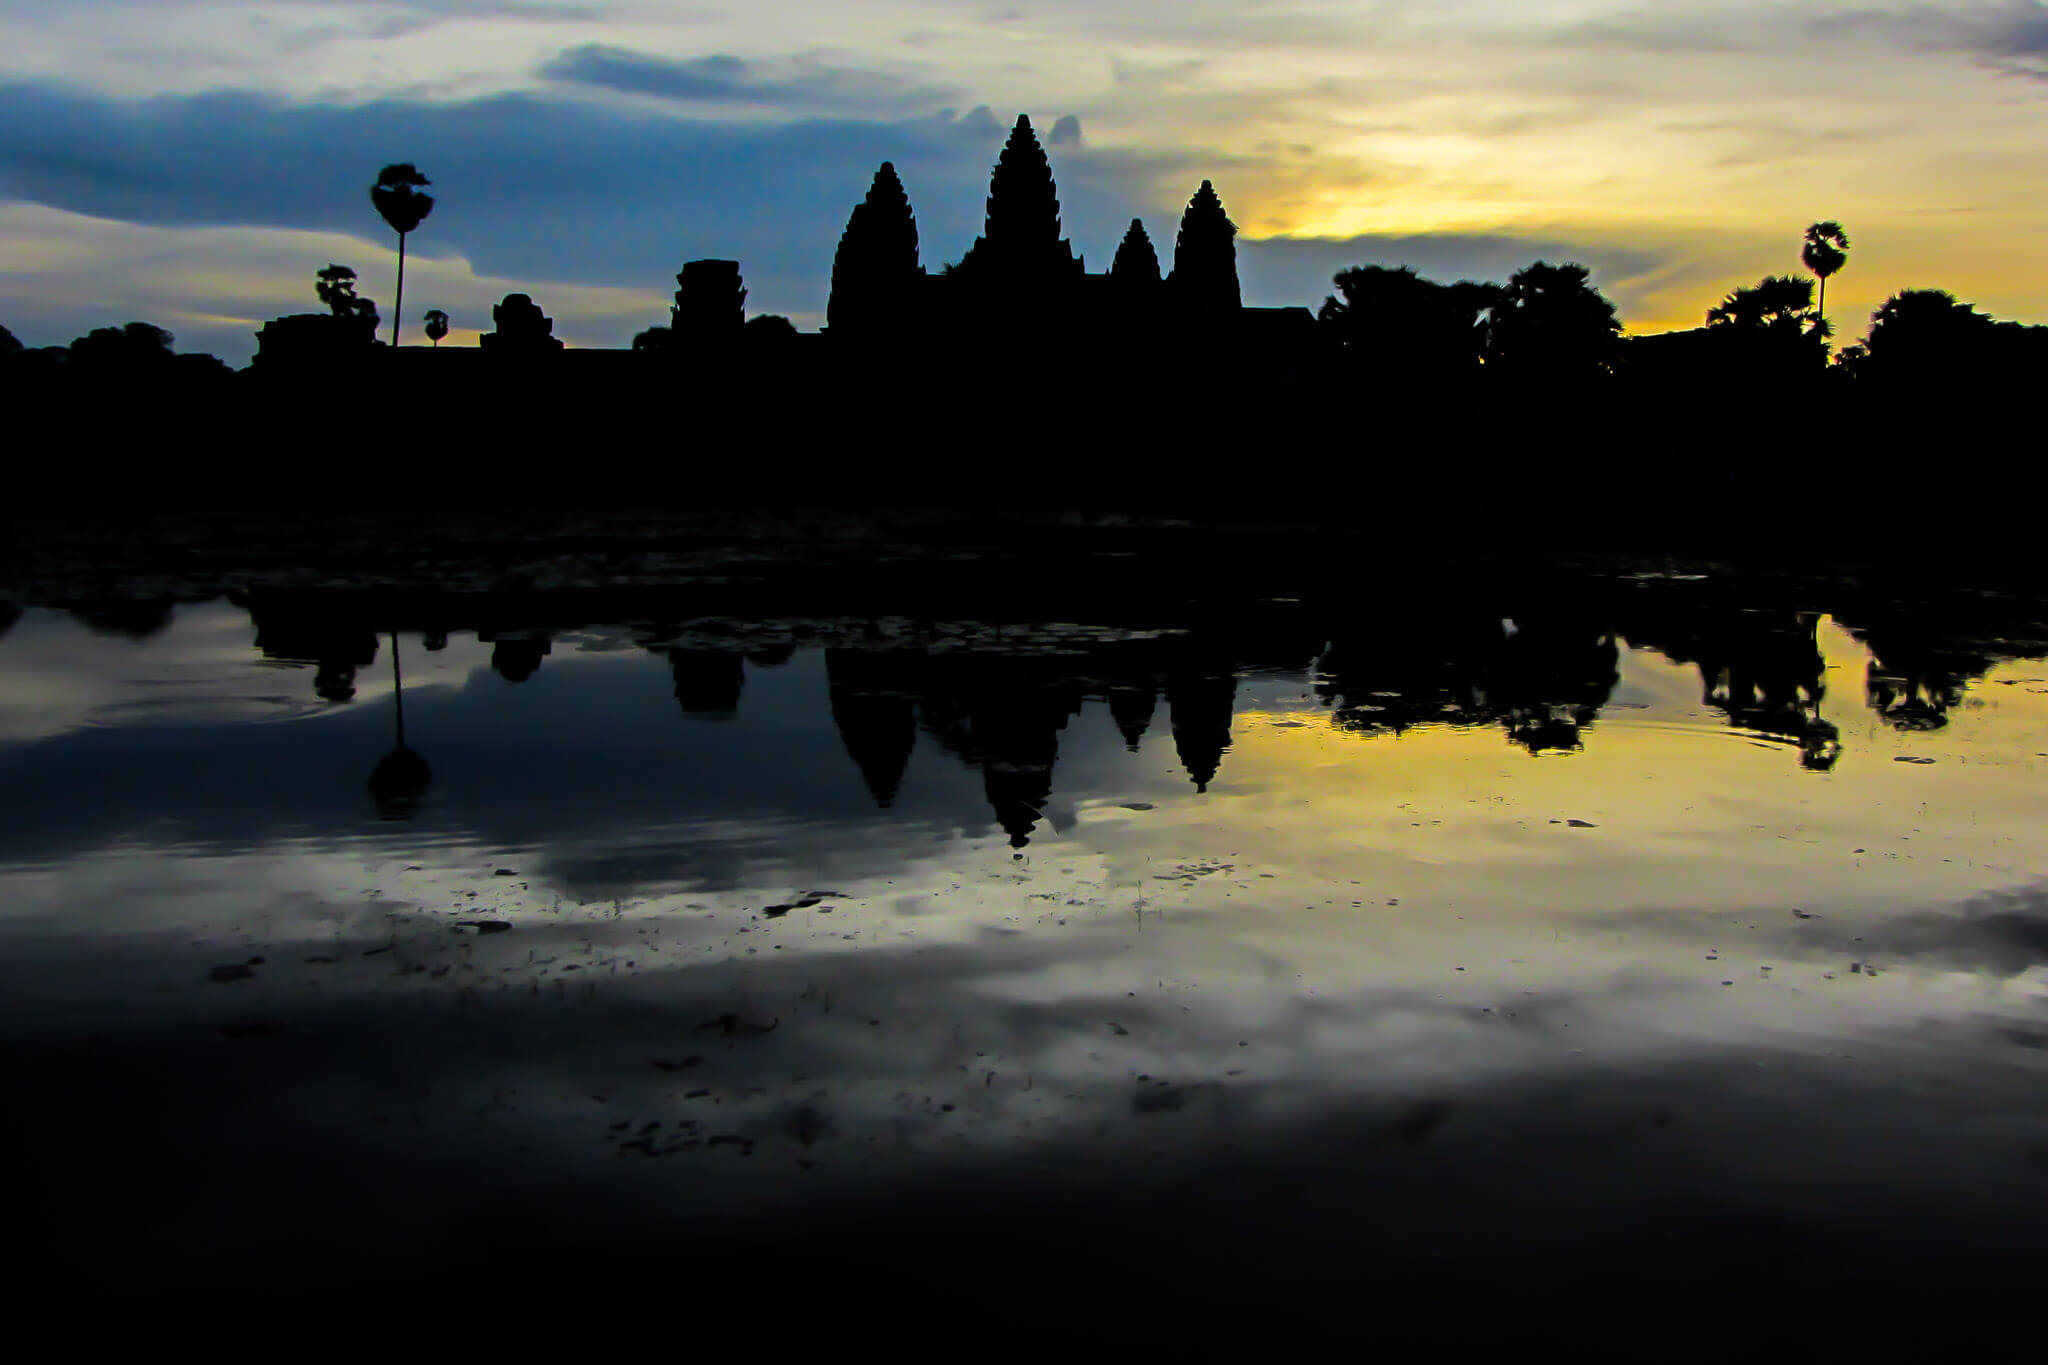 Sunrise at Angkor Wat. Last photo you'll see of a Temple on this article, promise!